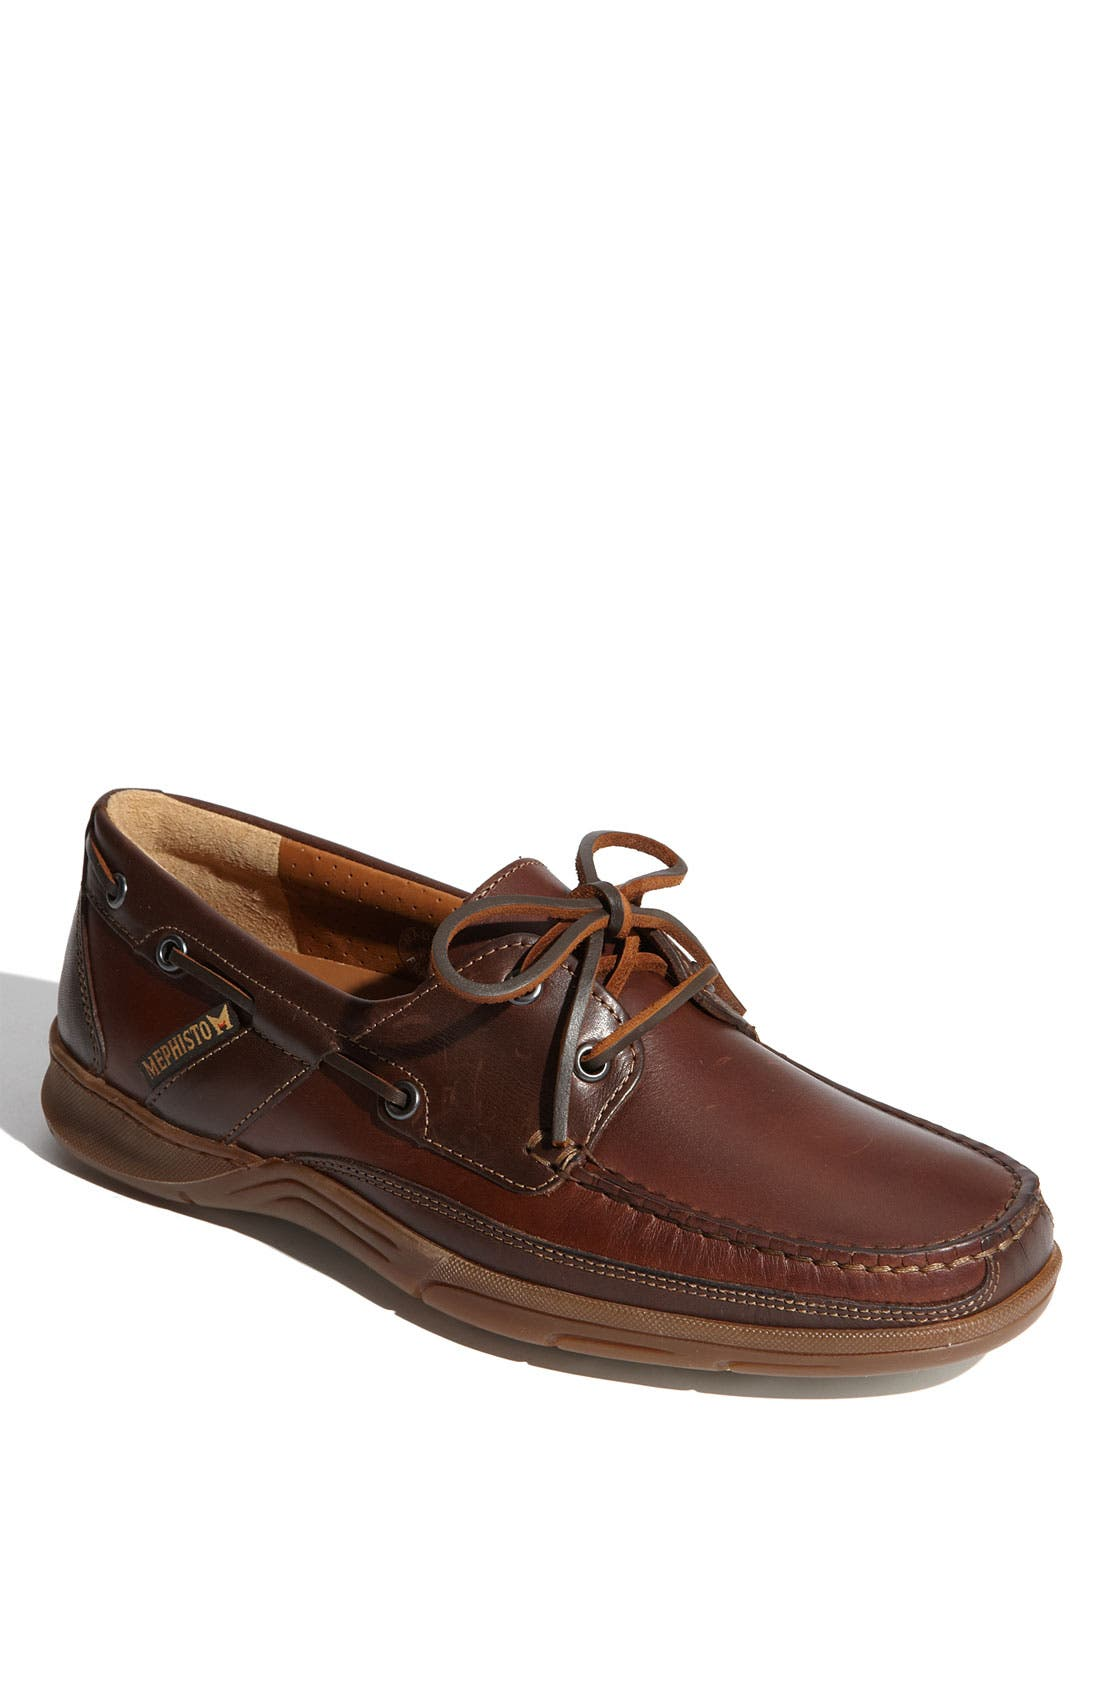 Main Image - Mephisto 'Felix' Boat Shoe (Men)